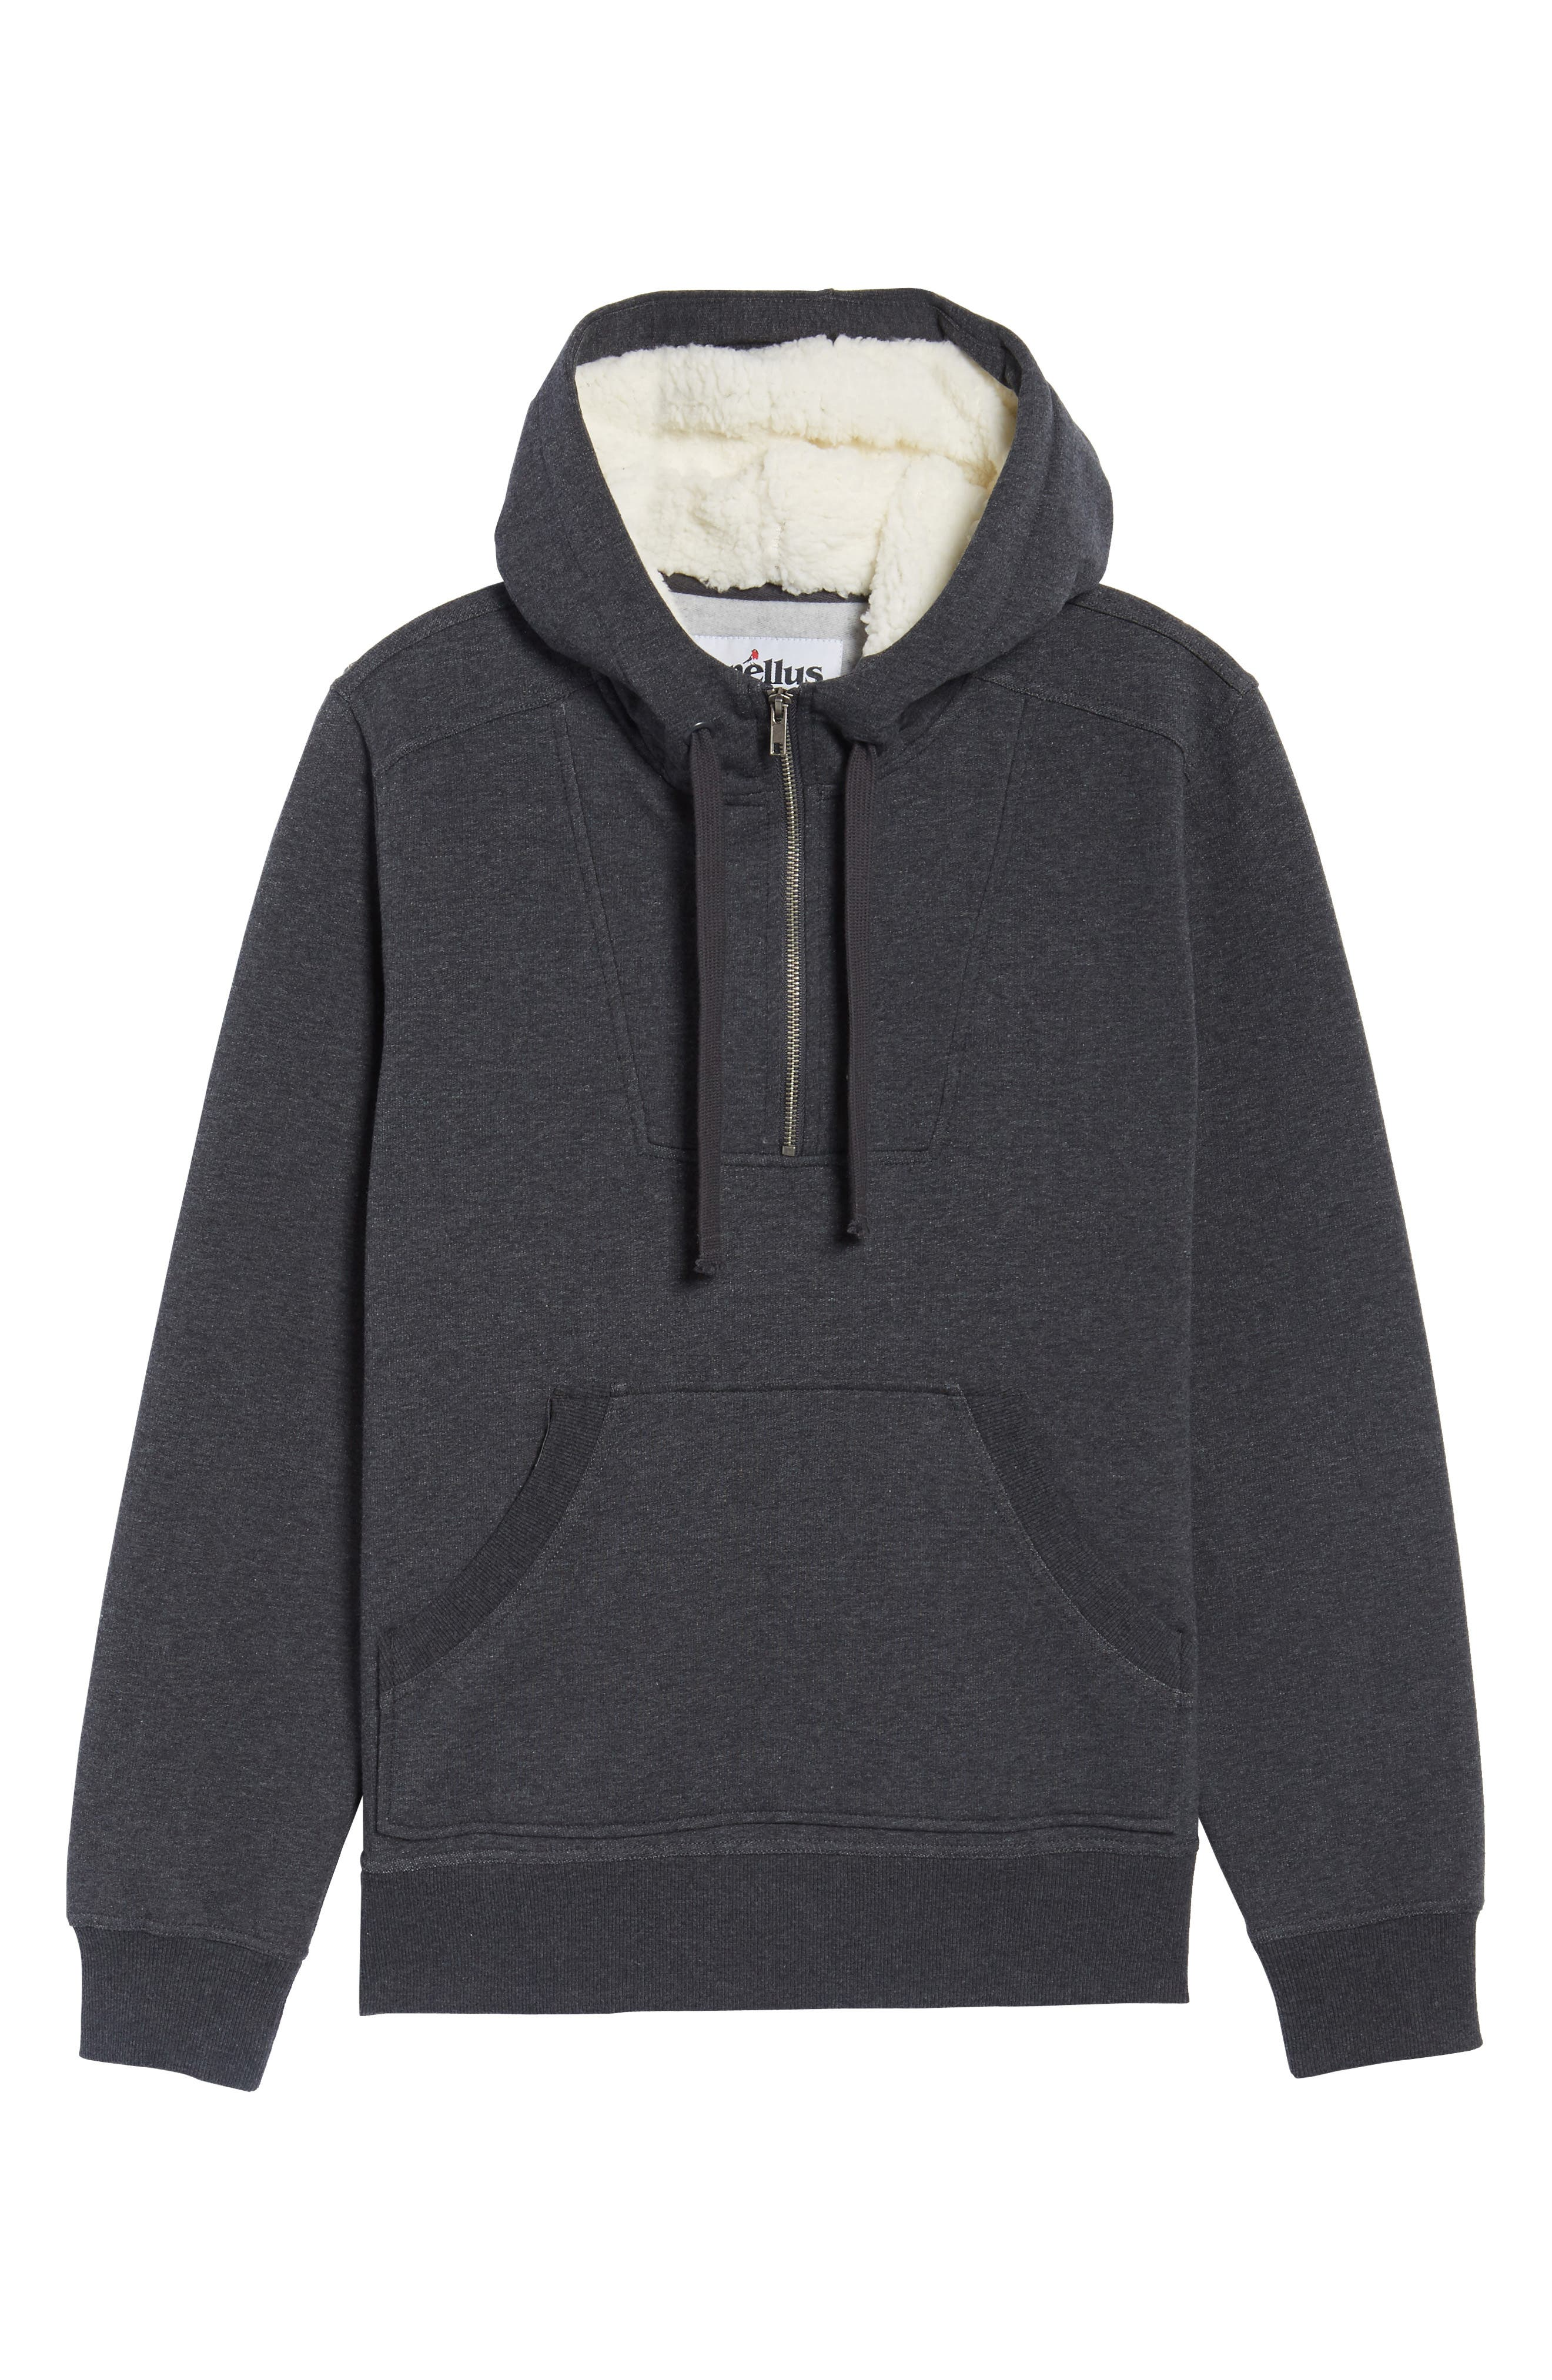 Fleece Lined Hoodie,                             Alternate thumbnail 6, color,                             Charcoal